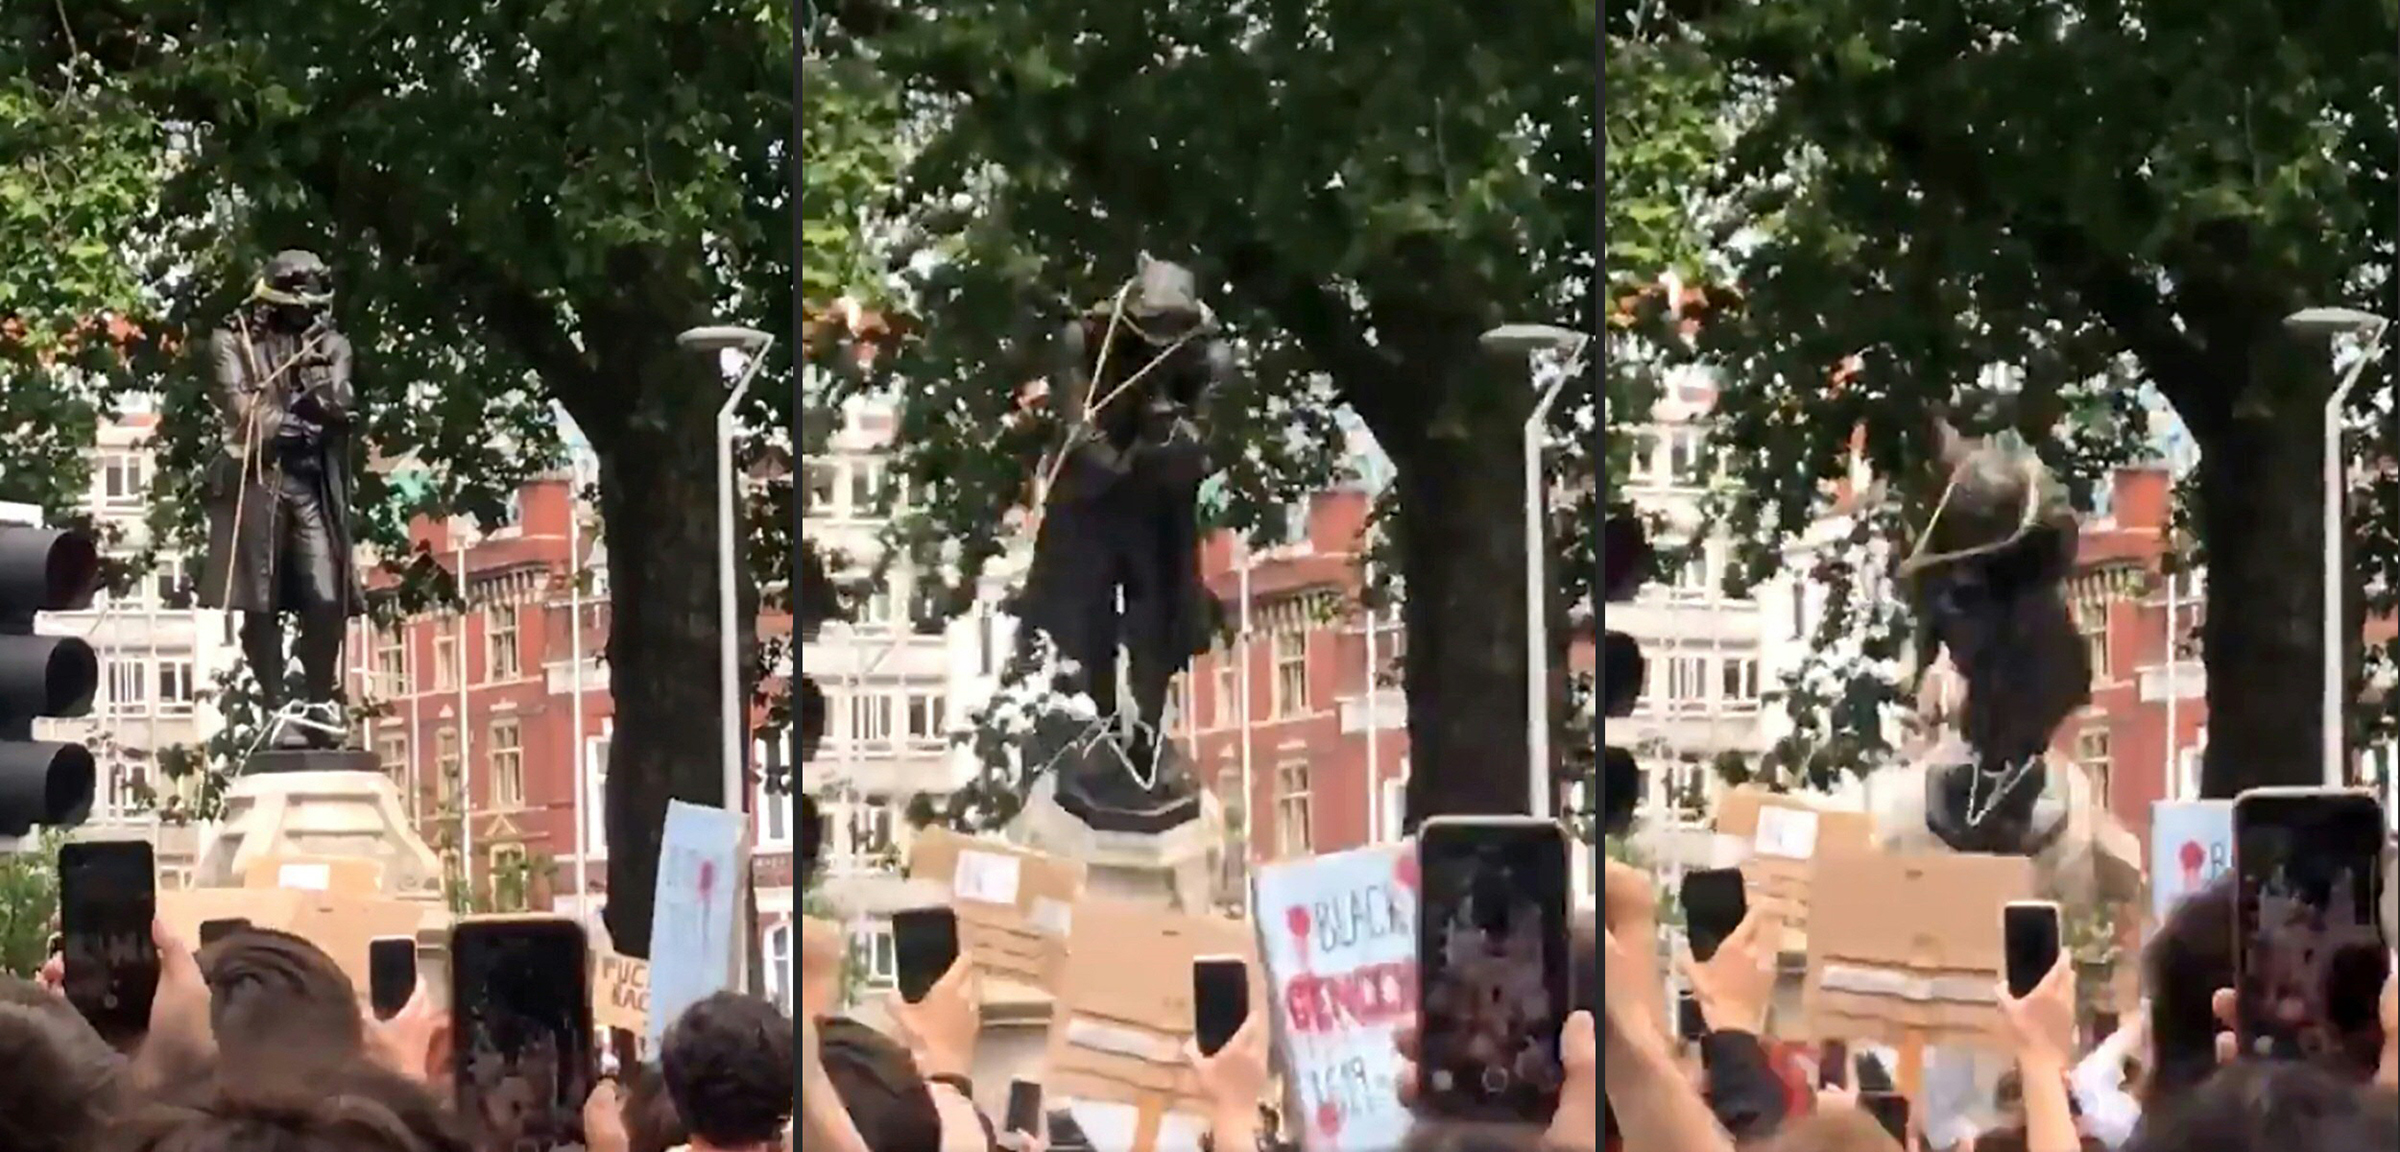 Protesters pulling down a statue of slave trader Edward Colston in Bristol, England, during a demonstration organized to show solidarity with the Black Lives Matter movement on June 7, 2020.